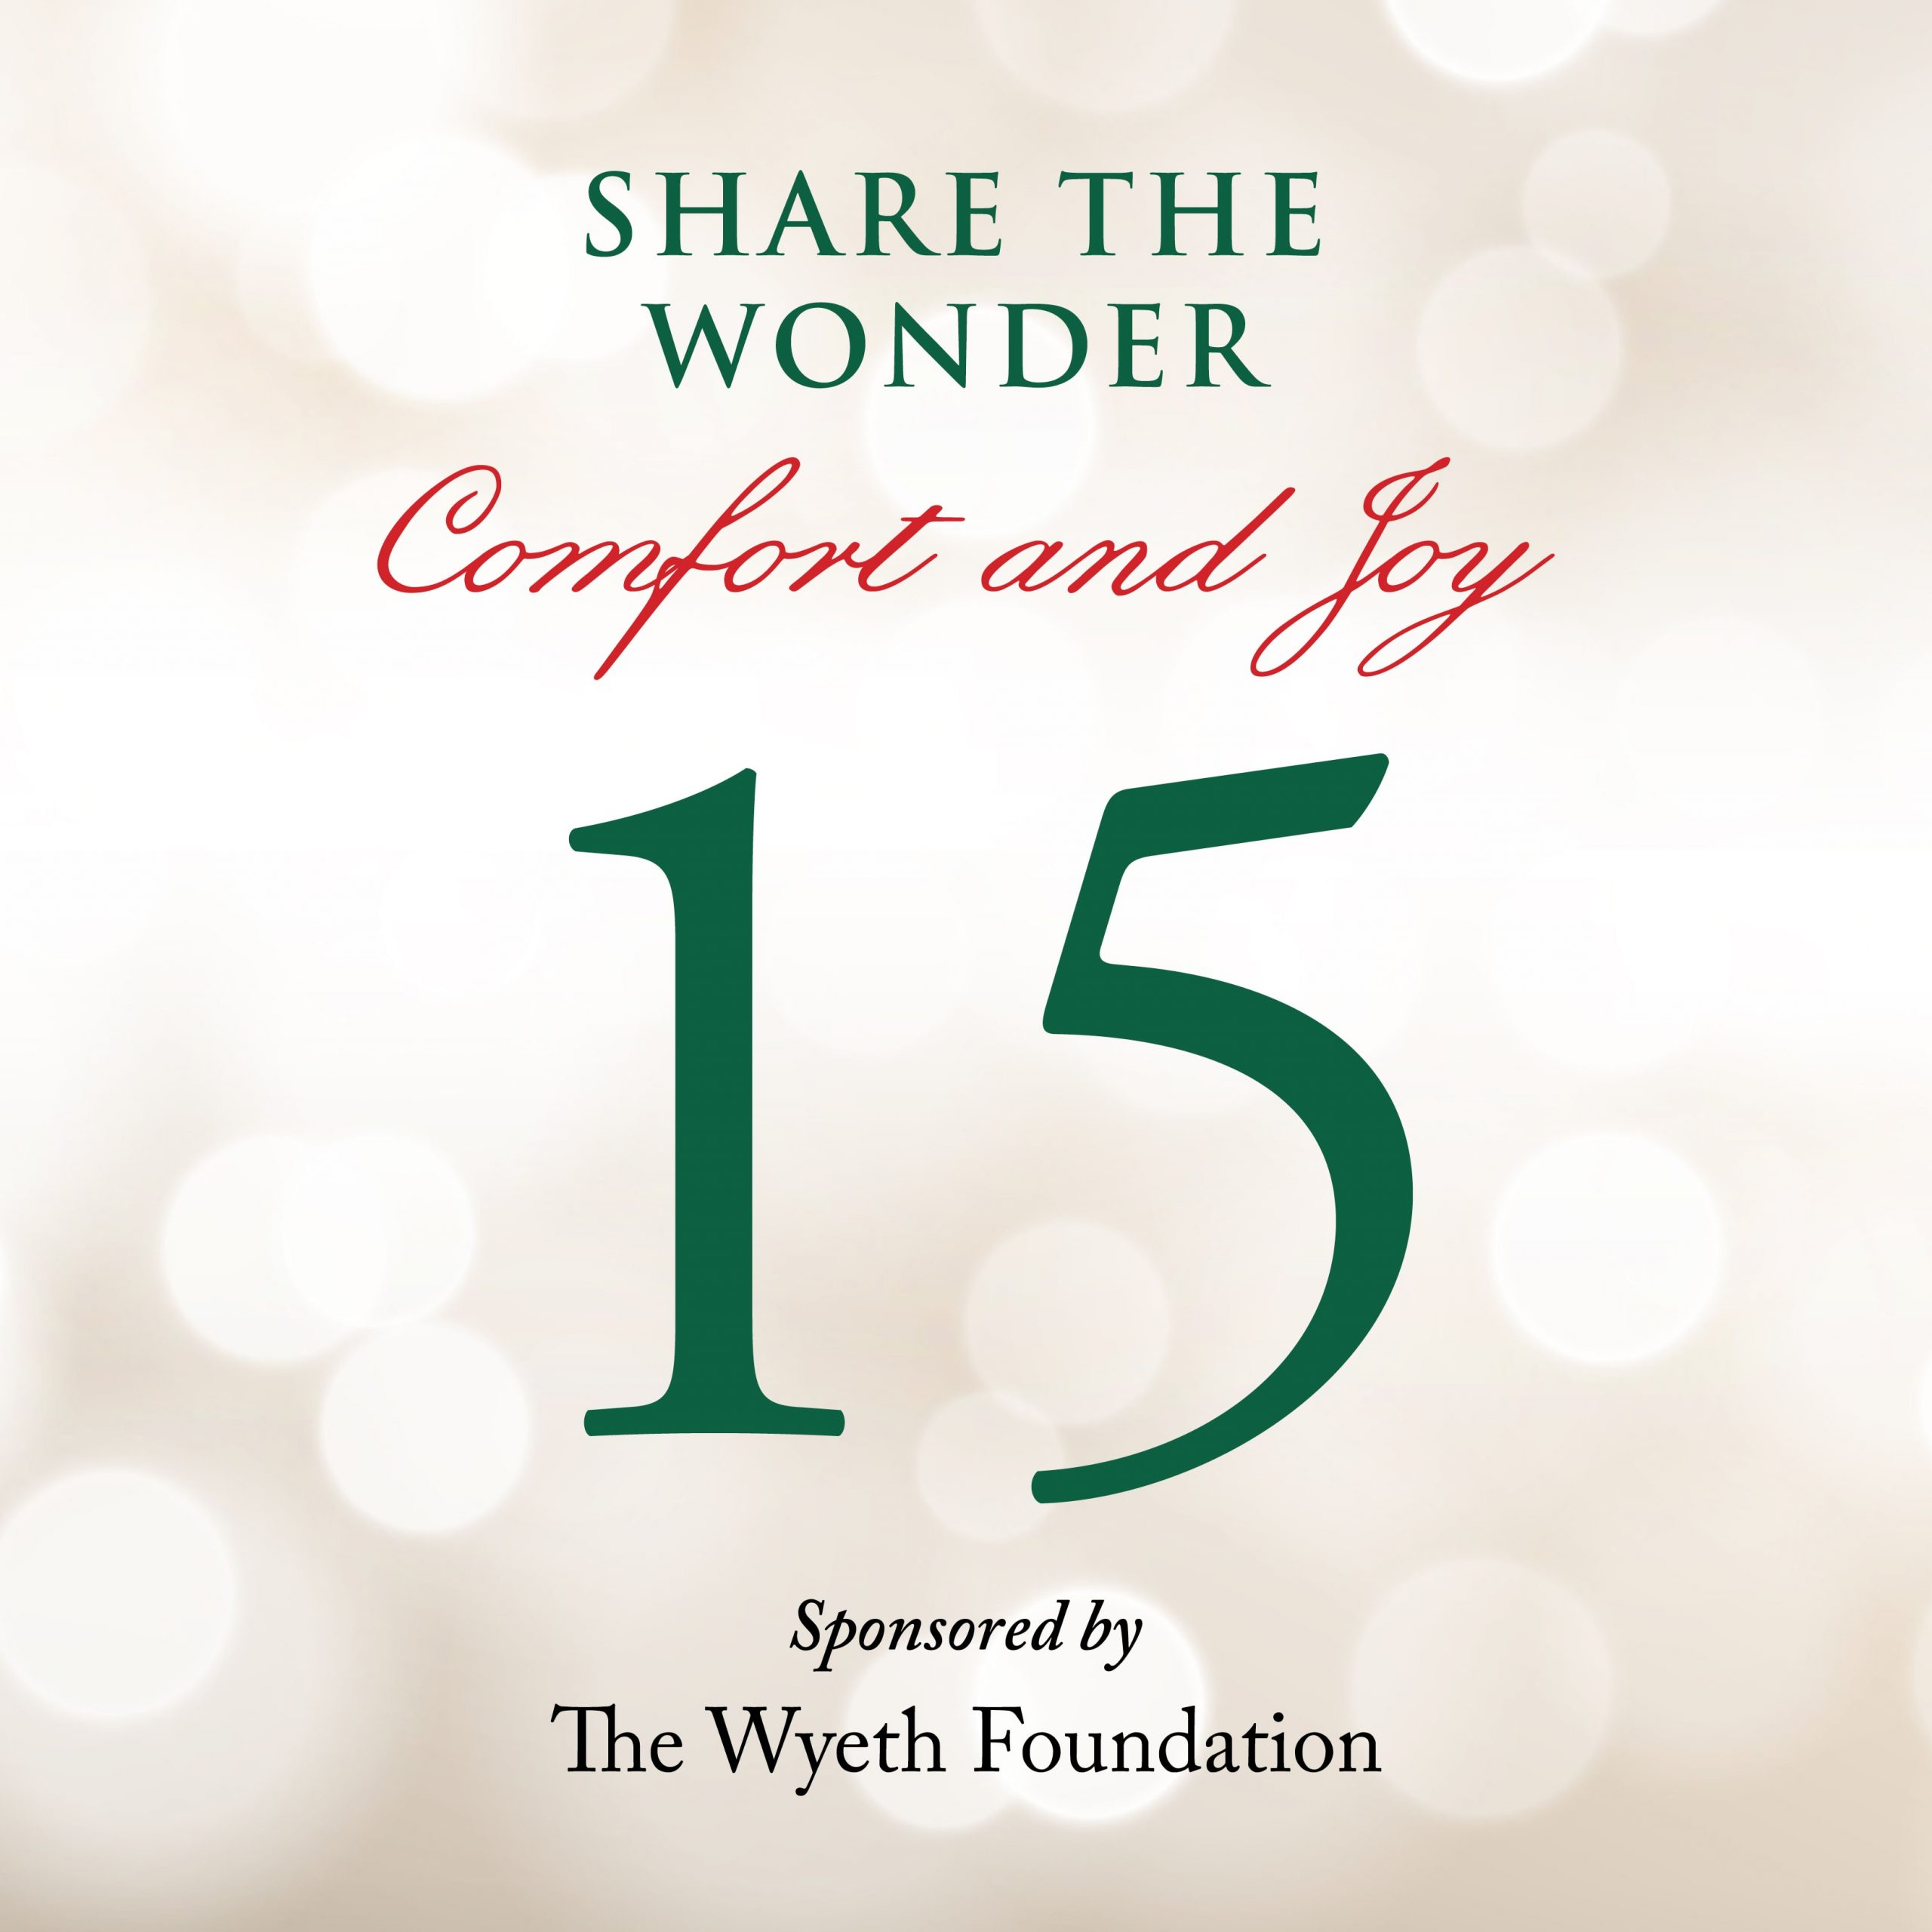 Day 15 of Share the Wonder: December 12